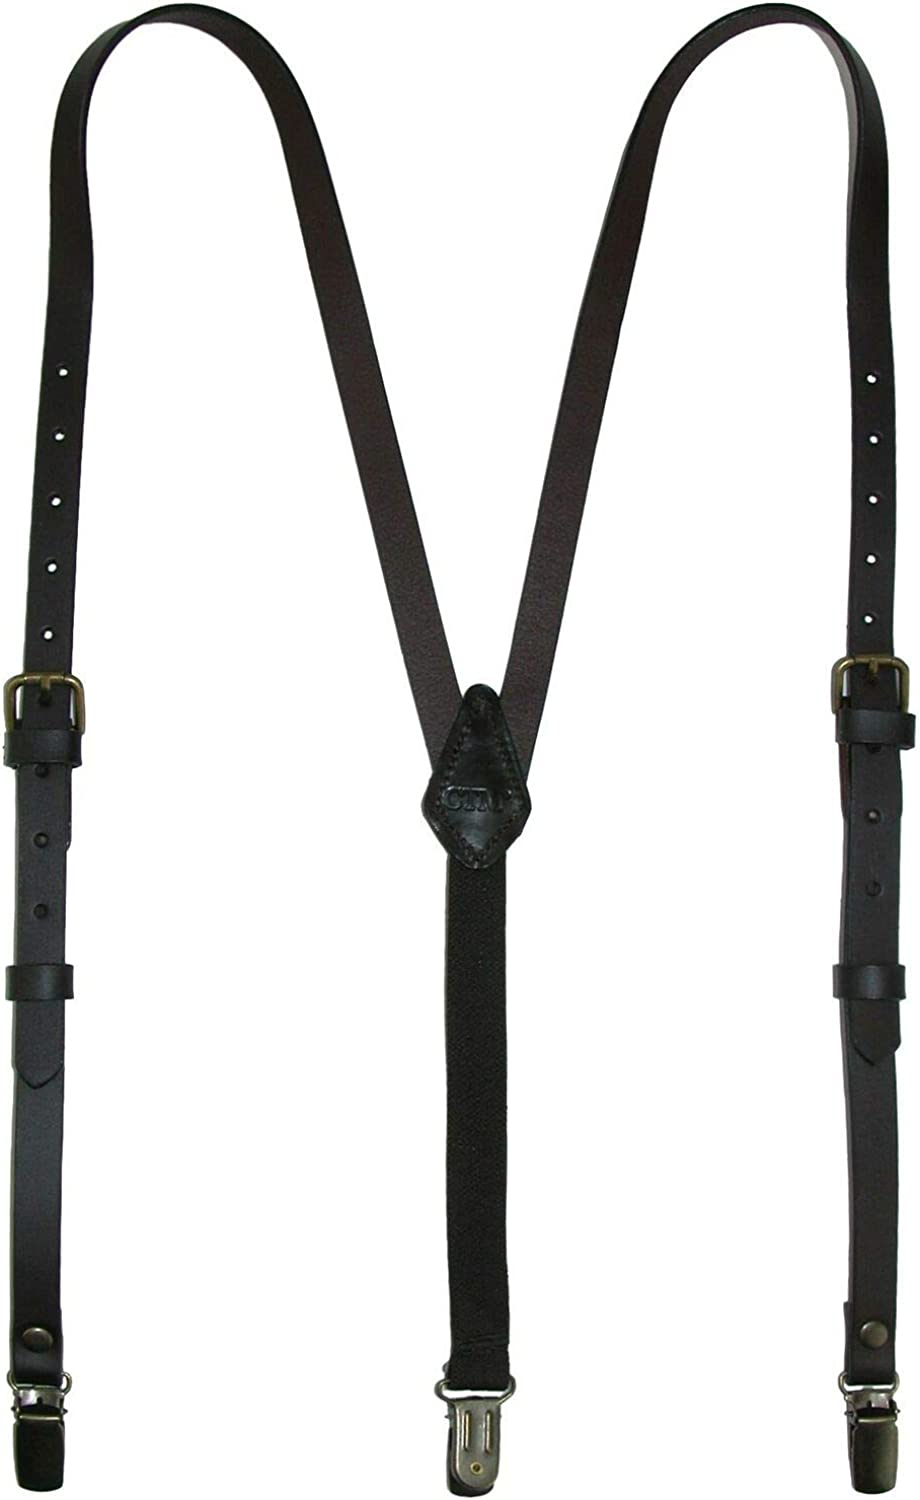 1 Pcs Women's Coated Leather 1/2 Inch Clip-End Suspenders (Black)